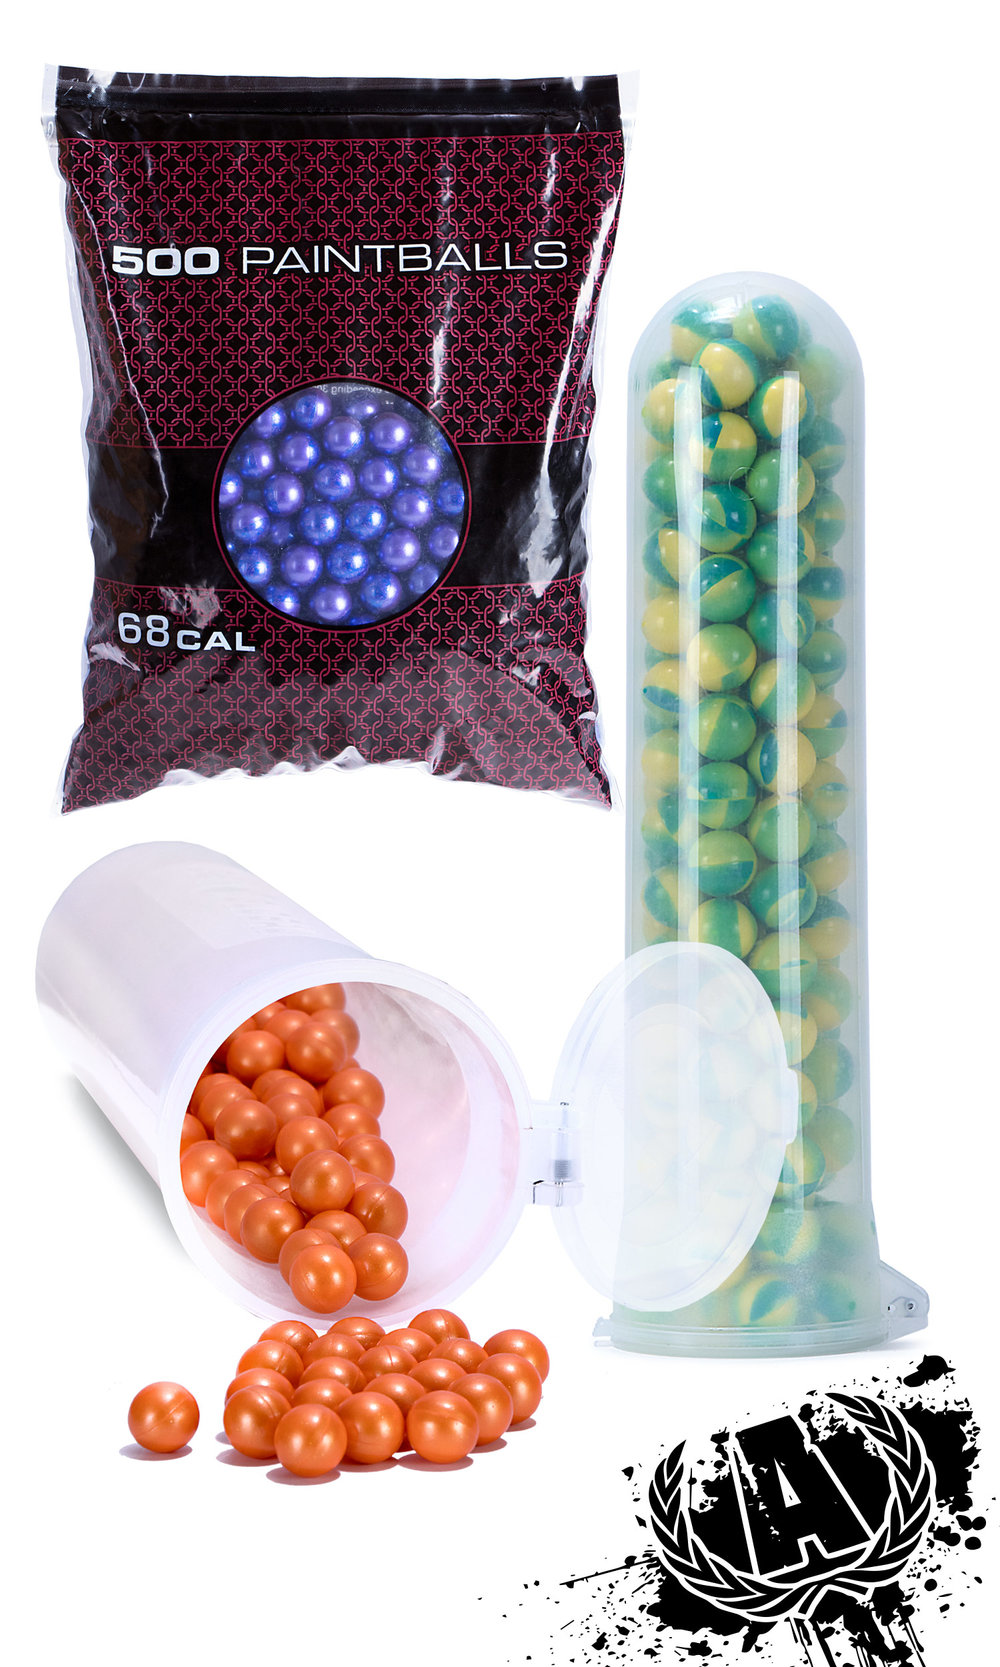 Additional Paintballs      140 Round s   $6.99   500 Rounds    $19.99  2000 Rounds  $64.99